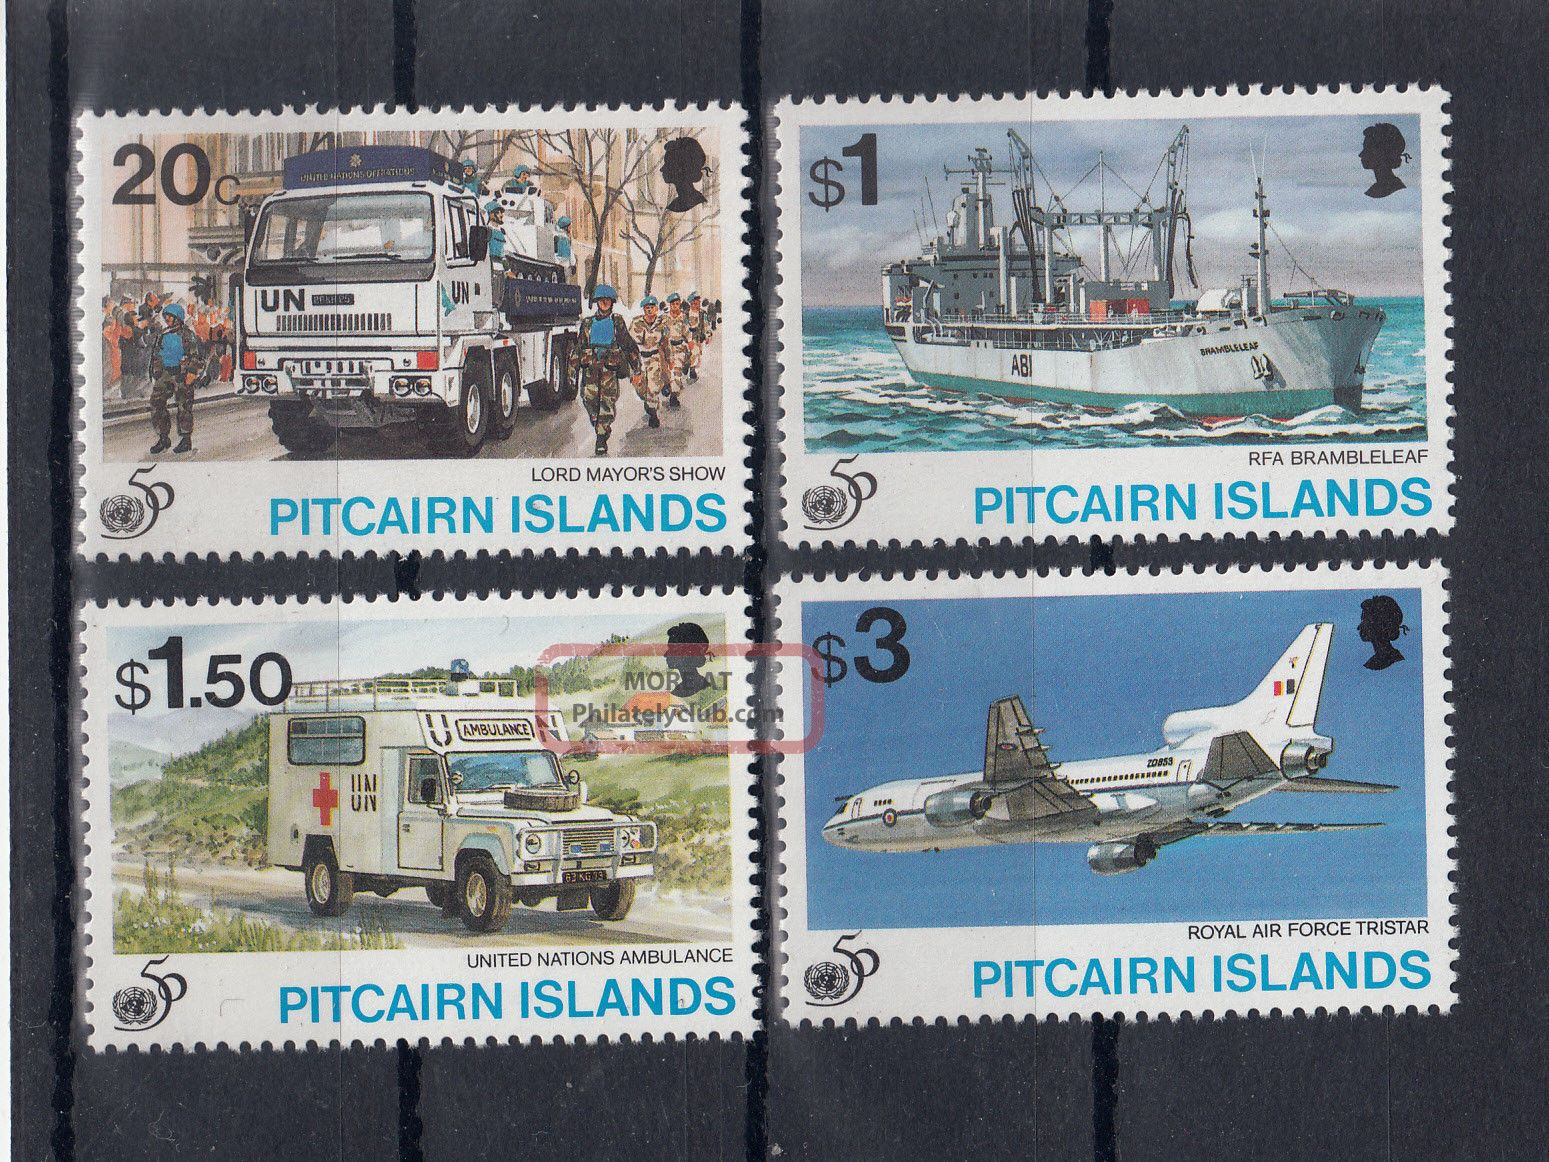 4007) Pitcairn Sg 483/486 / 50 Years Un / 50 Années Uno // 50 Jahre Uno British Colonies & Territories photo